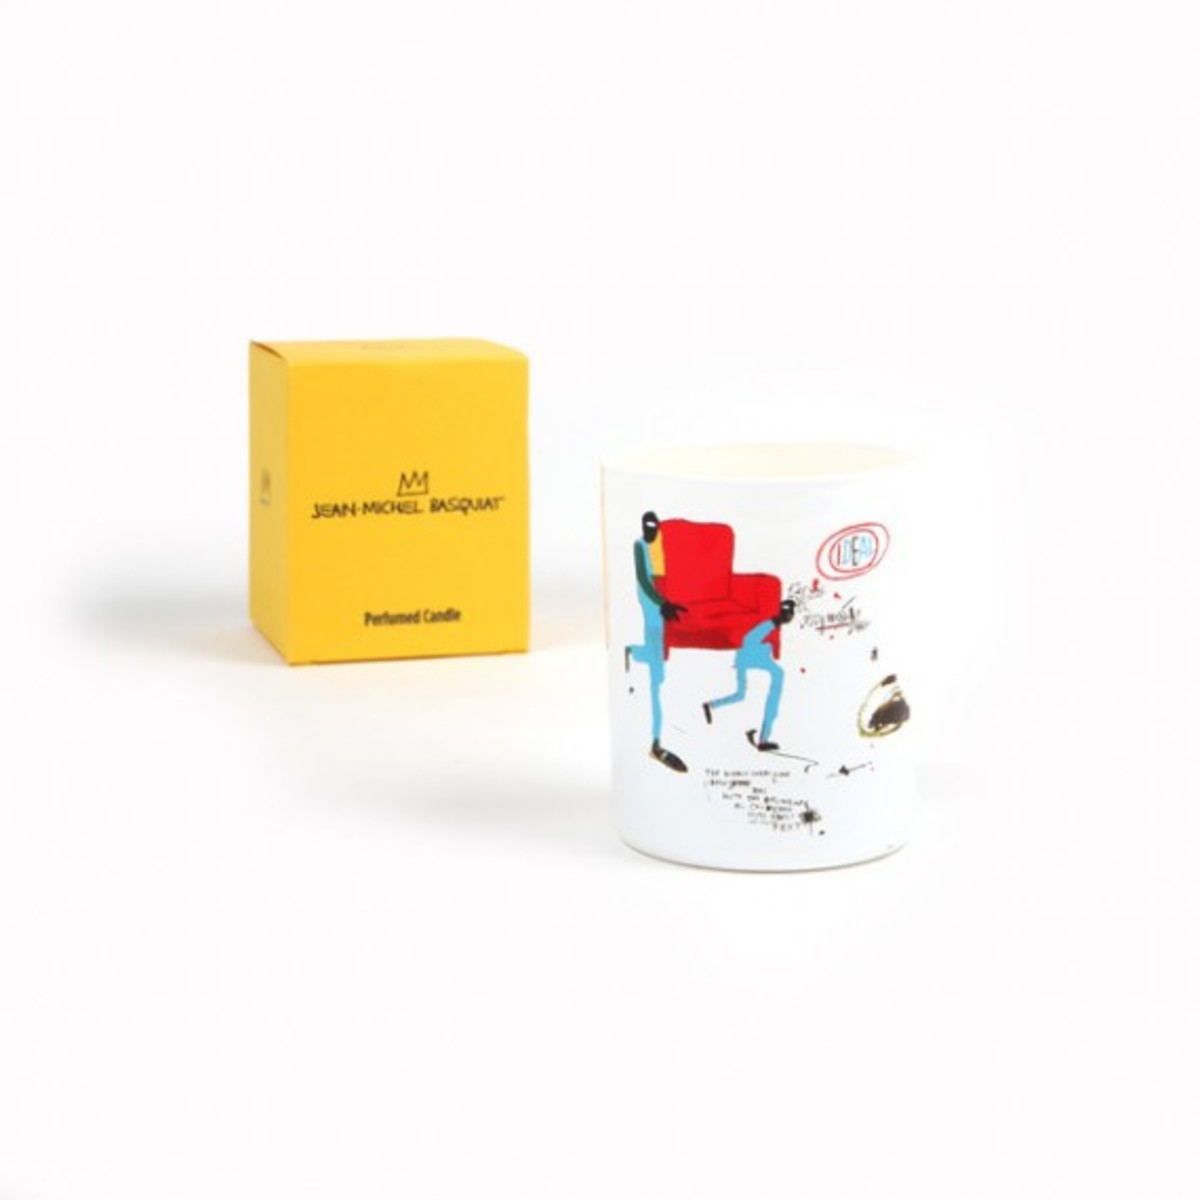 ligne-blanche-jean-michel-basquiat-perfumed-candle-04